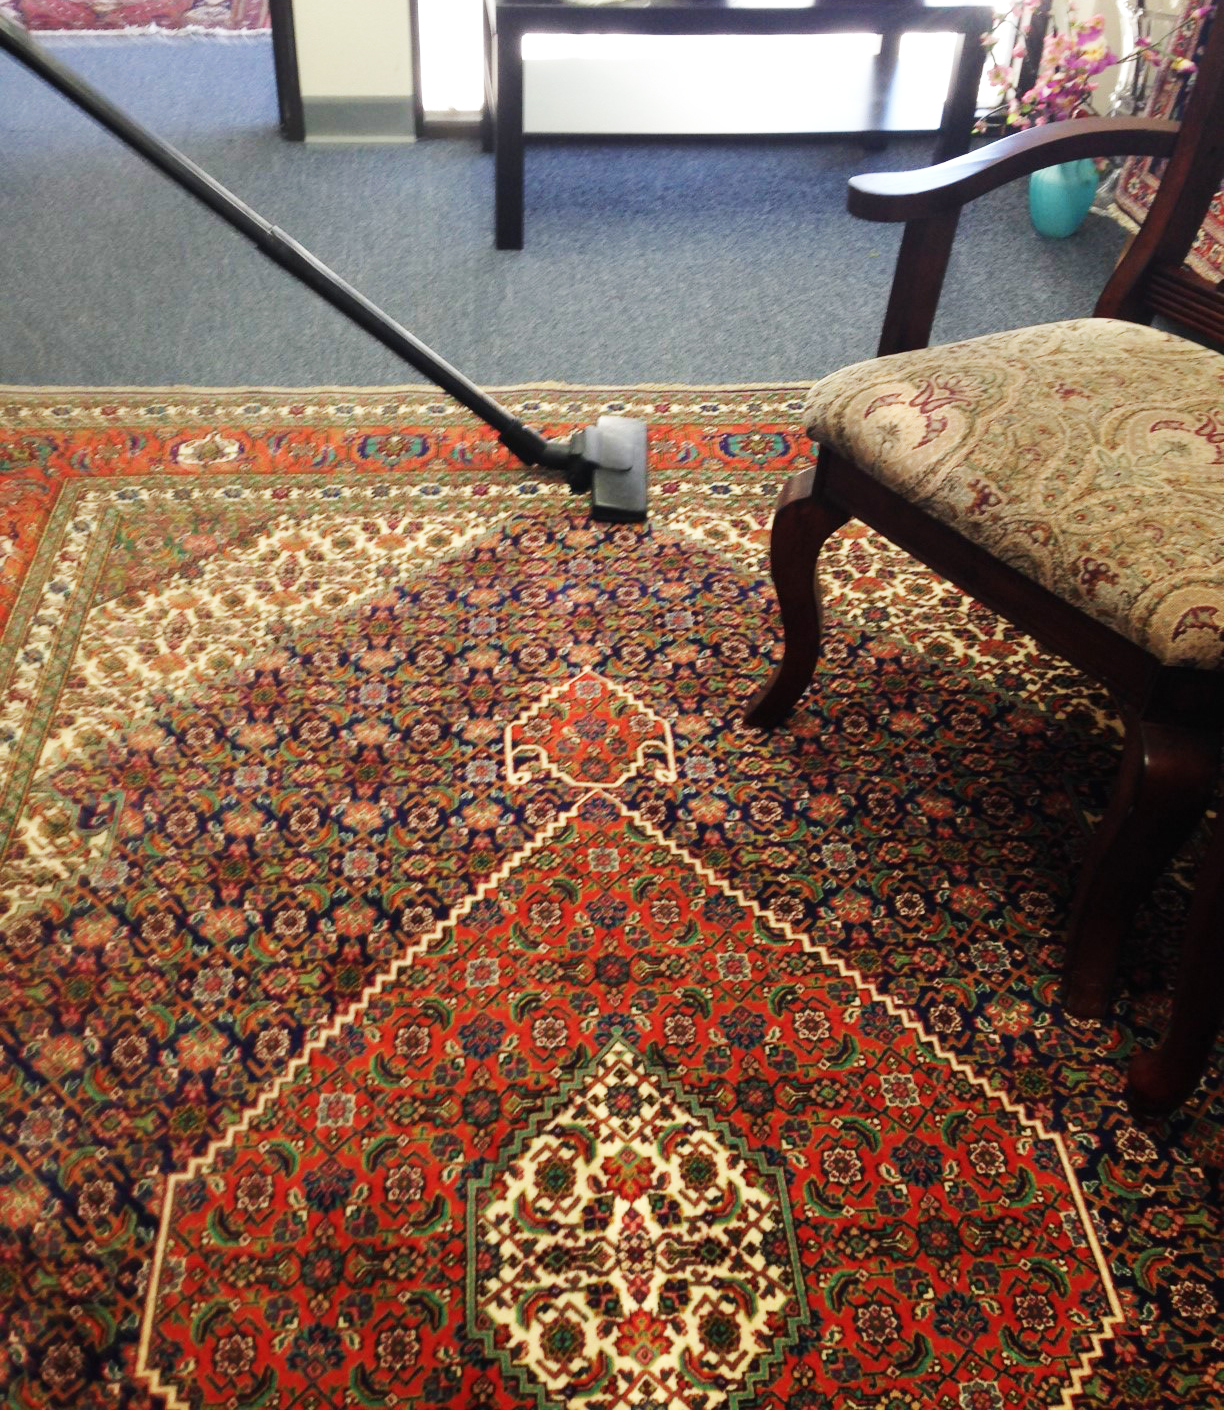 How To Vacuum Your Oriental Rug